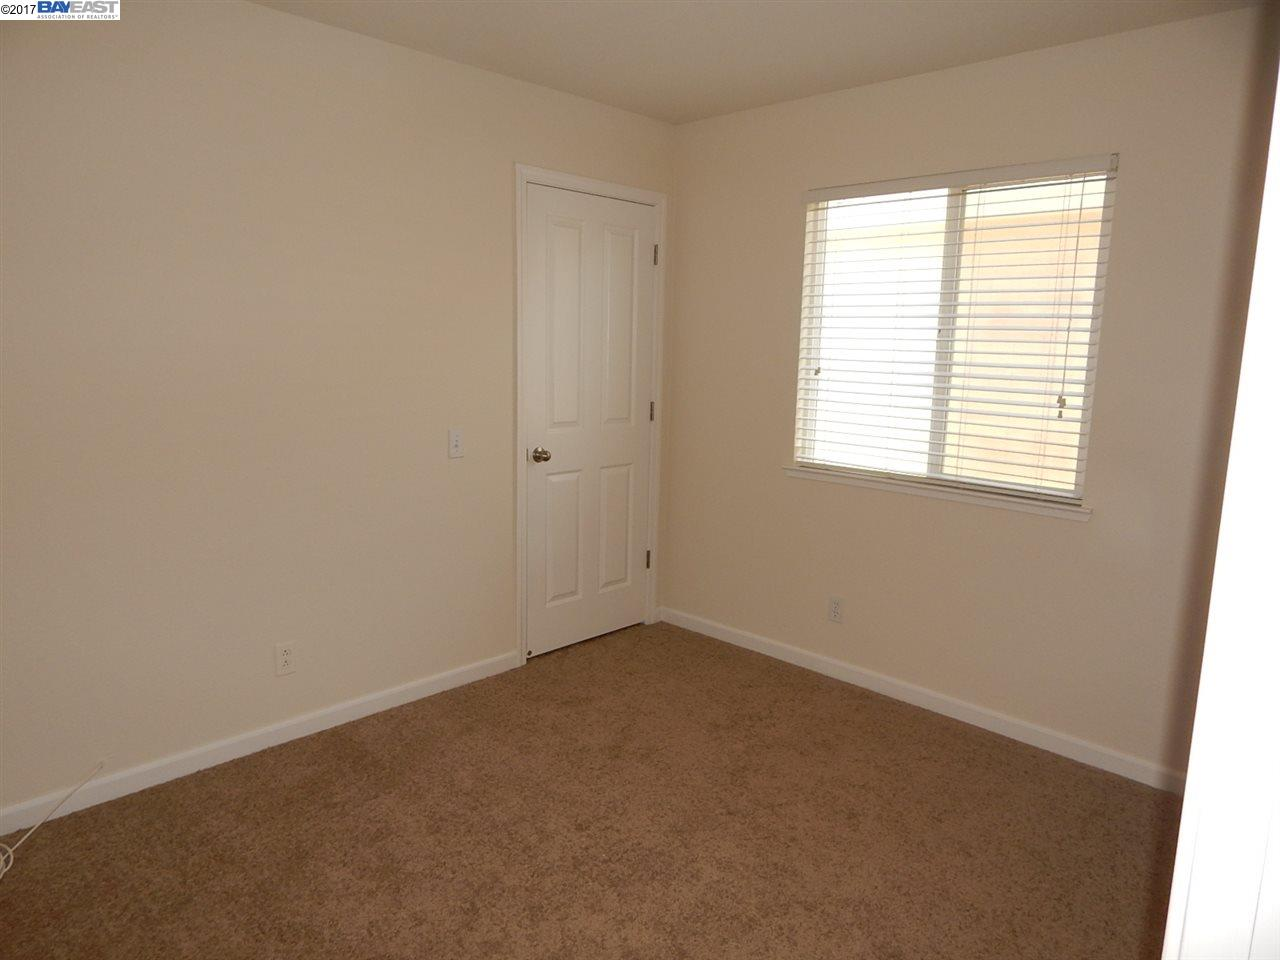 Additional photo for property listing at 1436 Summerwind Lane  Manteca, カリフォルニア 95337 アメリカ合衆国